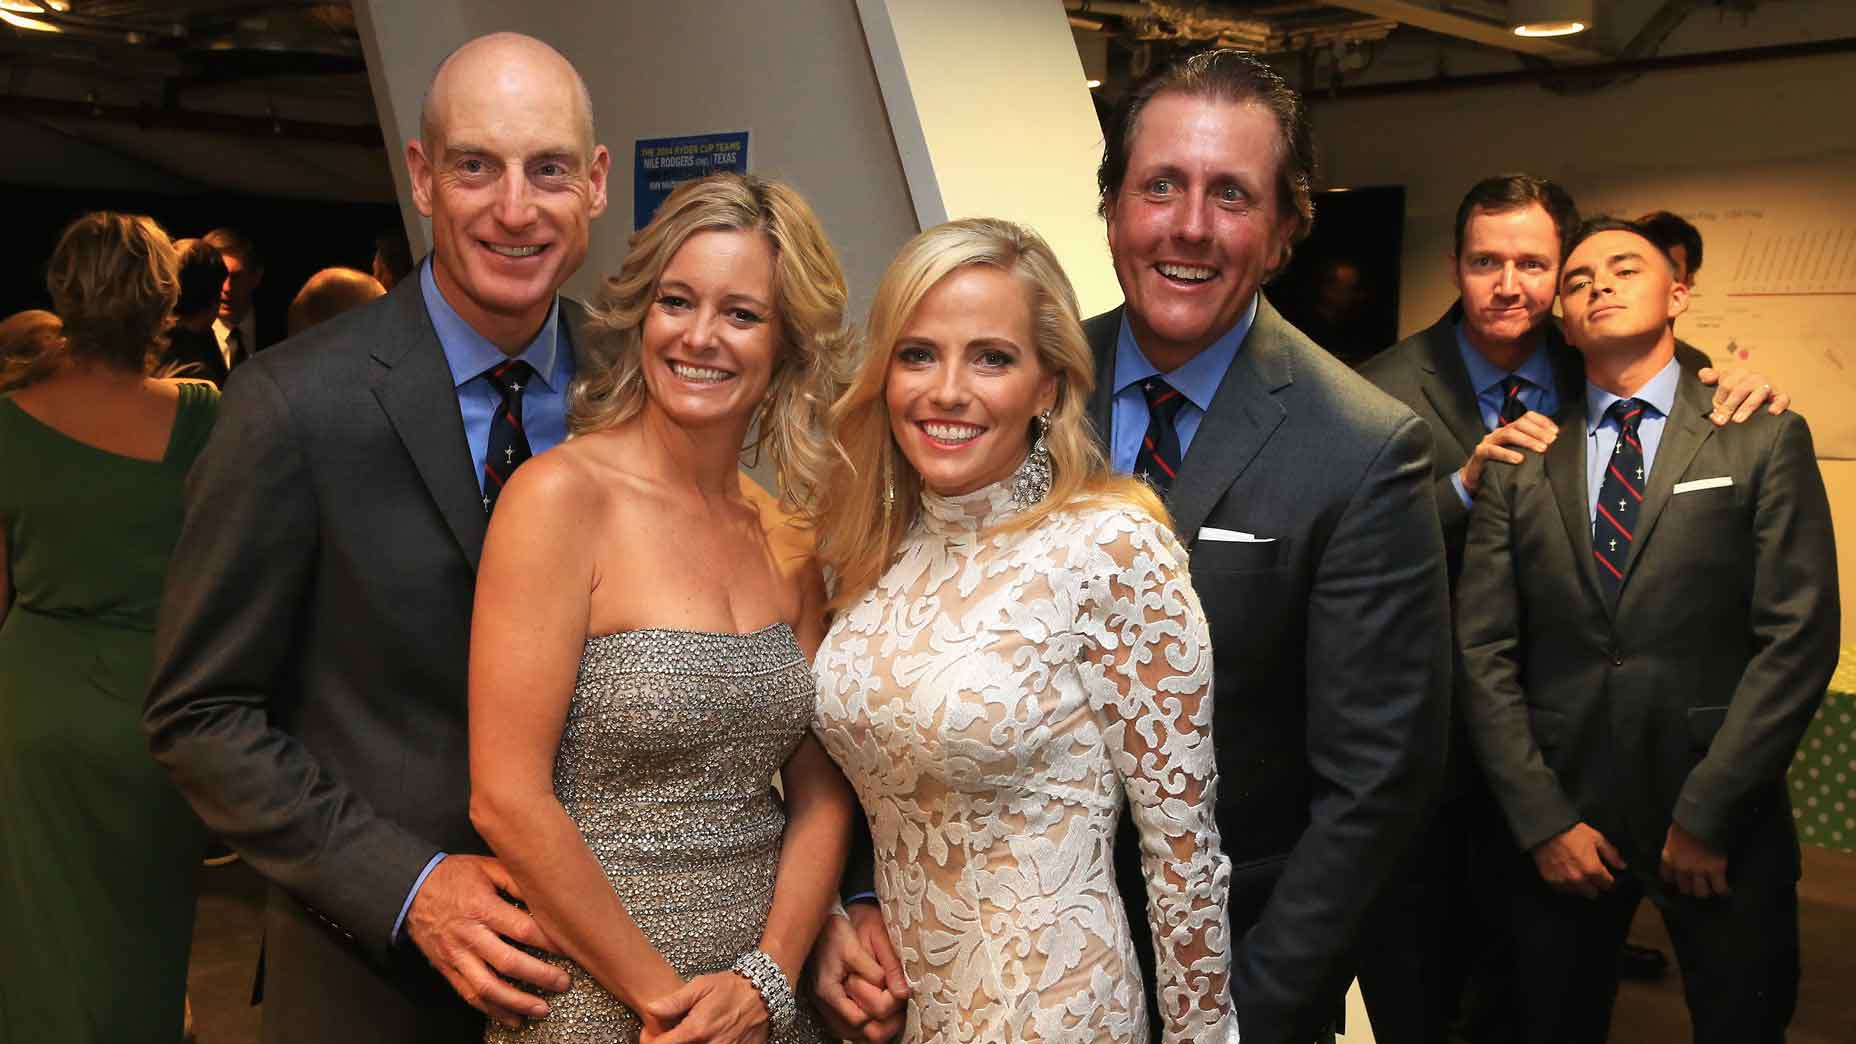 From left, Jim Furyk, Tabitha Furyk, Amy Mickelson, Phil Mickelson, Jimmy Walker and Rickie Fowler at the 2014 Ryder Cup.